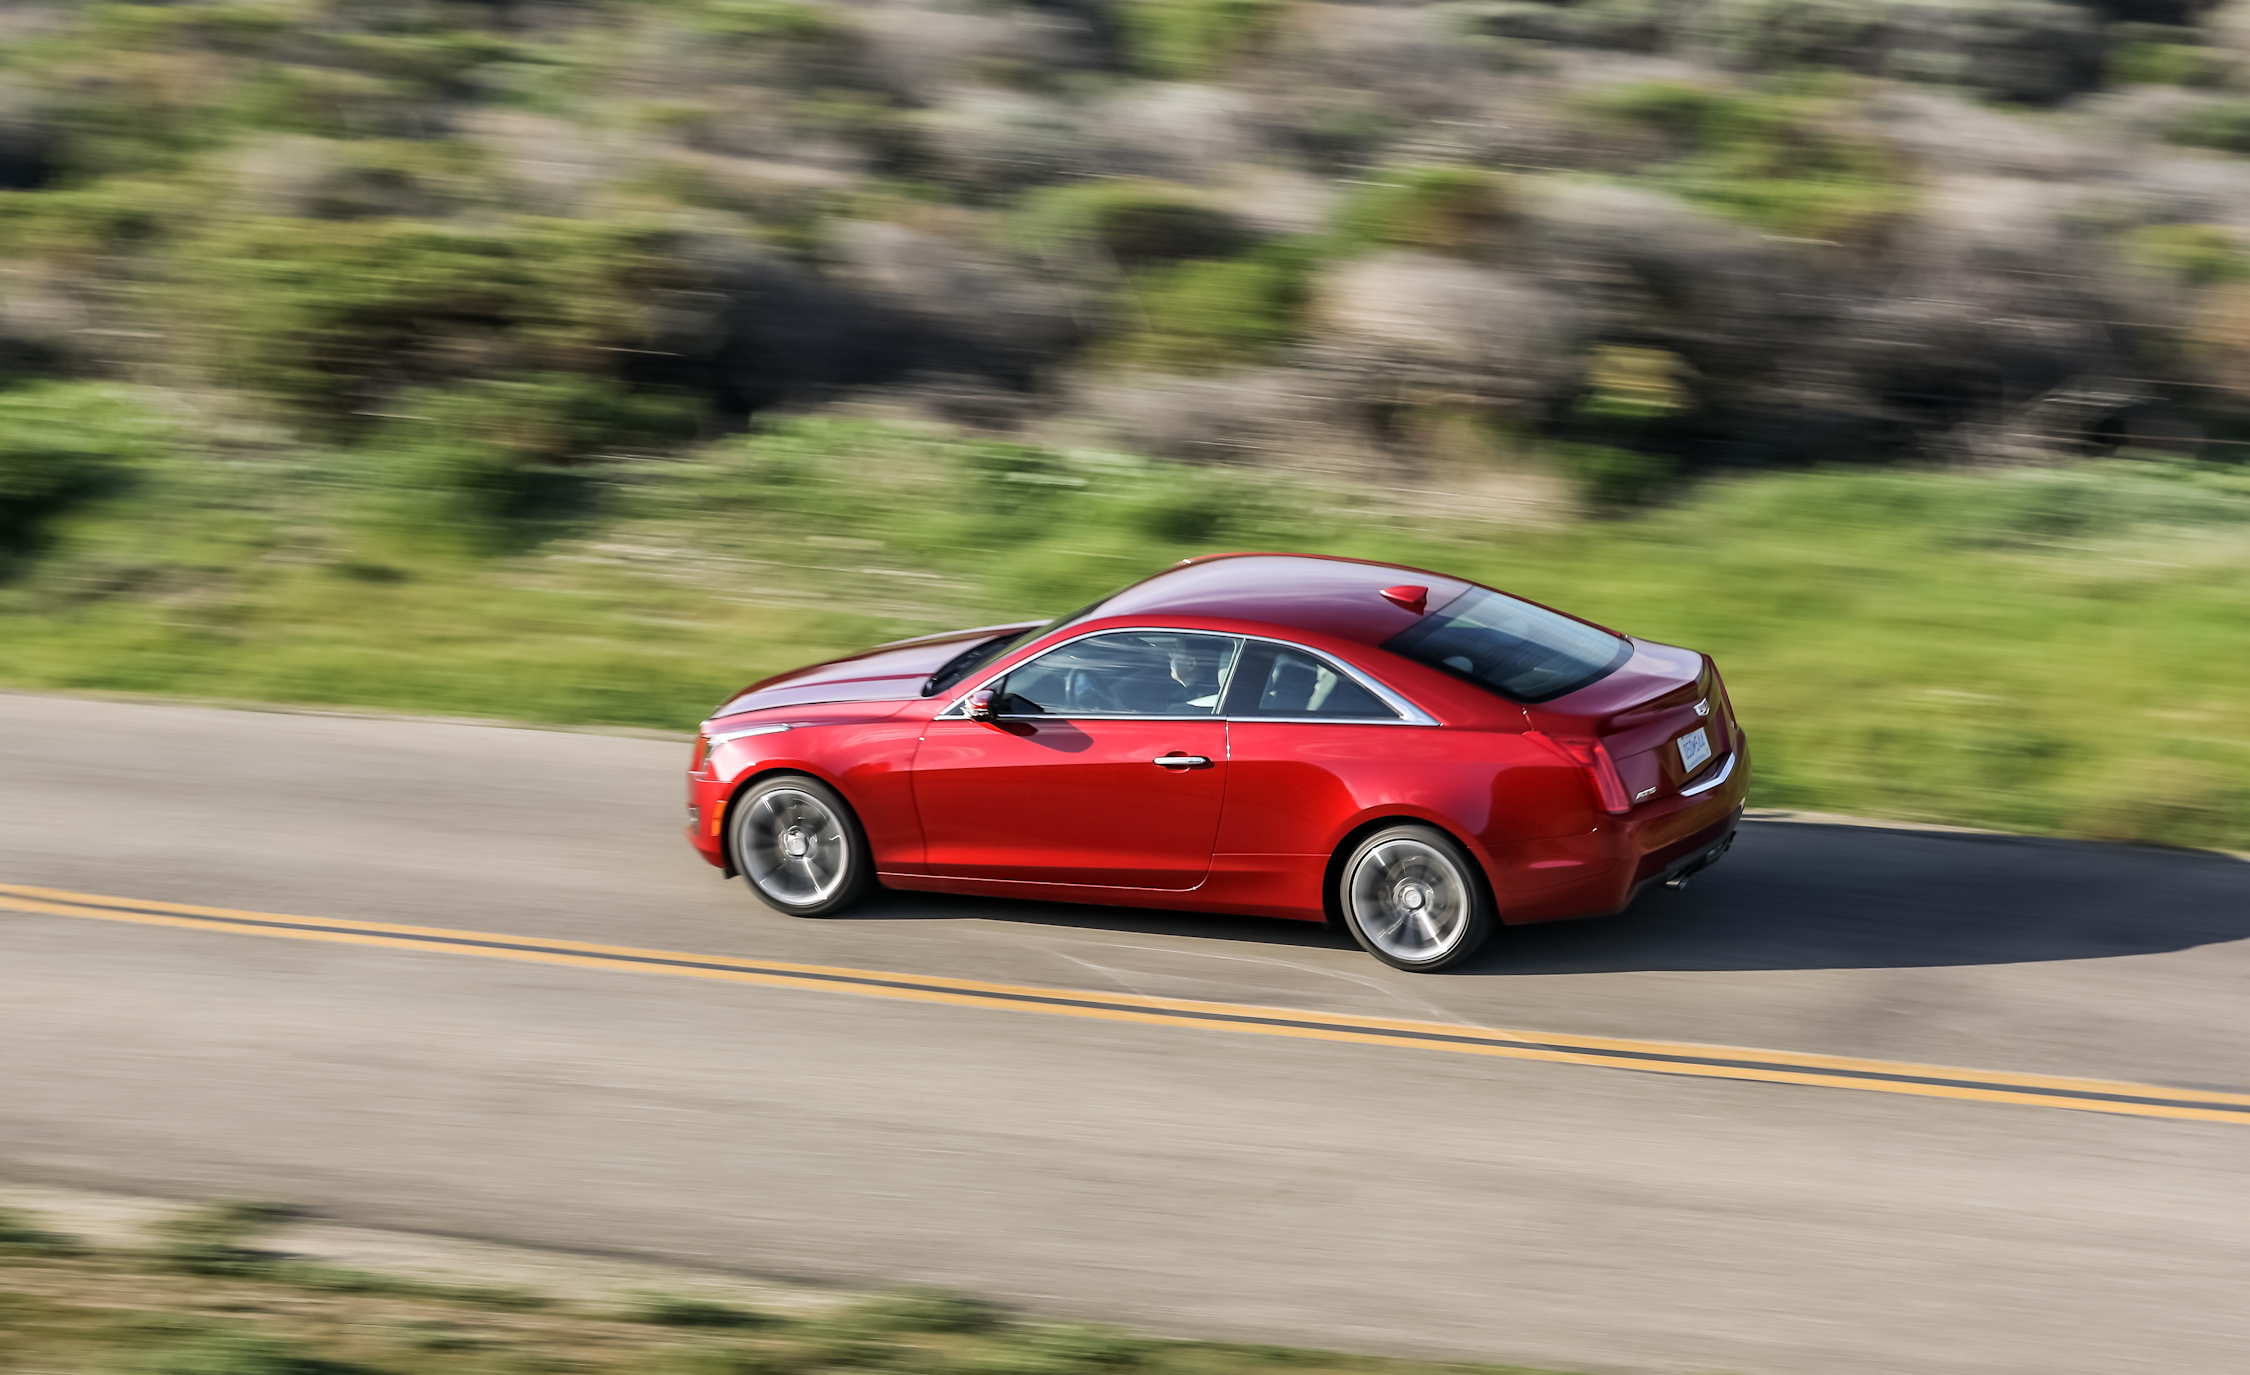 2015 Cadillac ATS Coupe 3.6 Performance Test